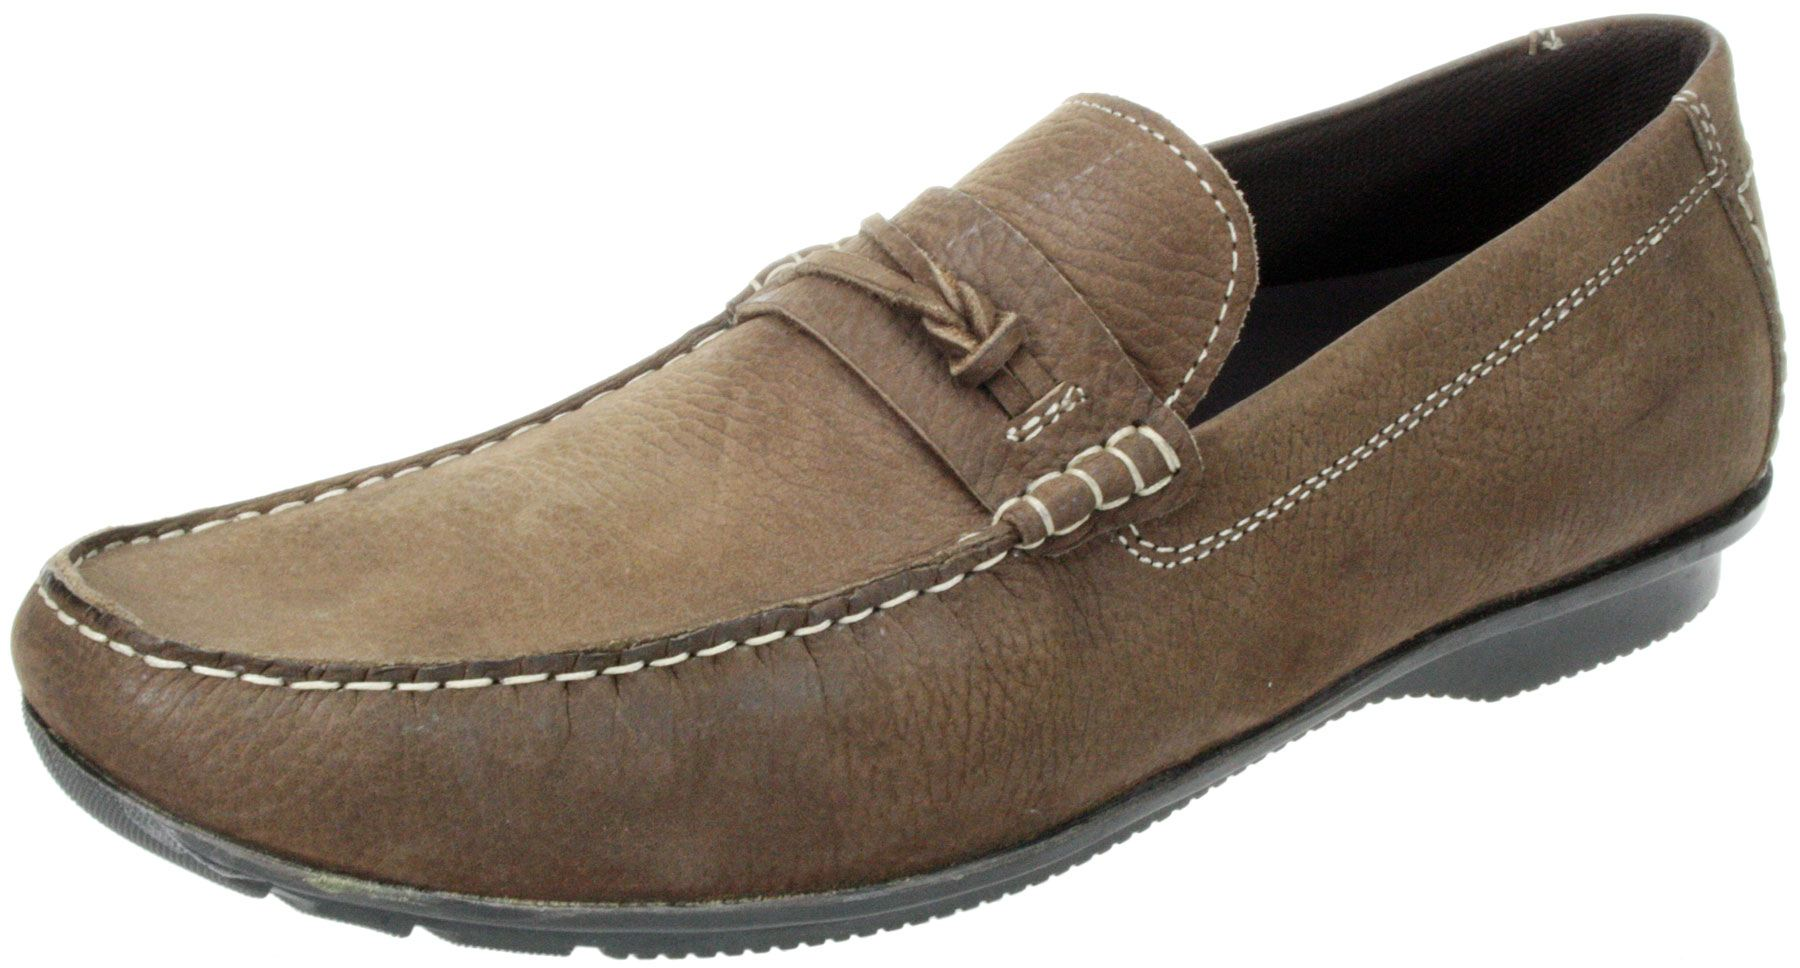 mens soft real leather moccasin casual shoes ebay